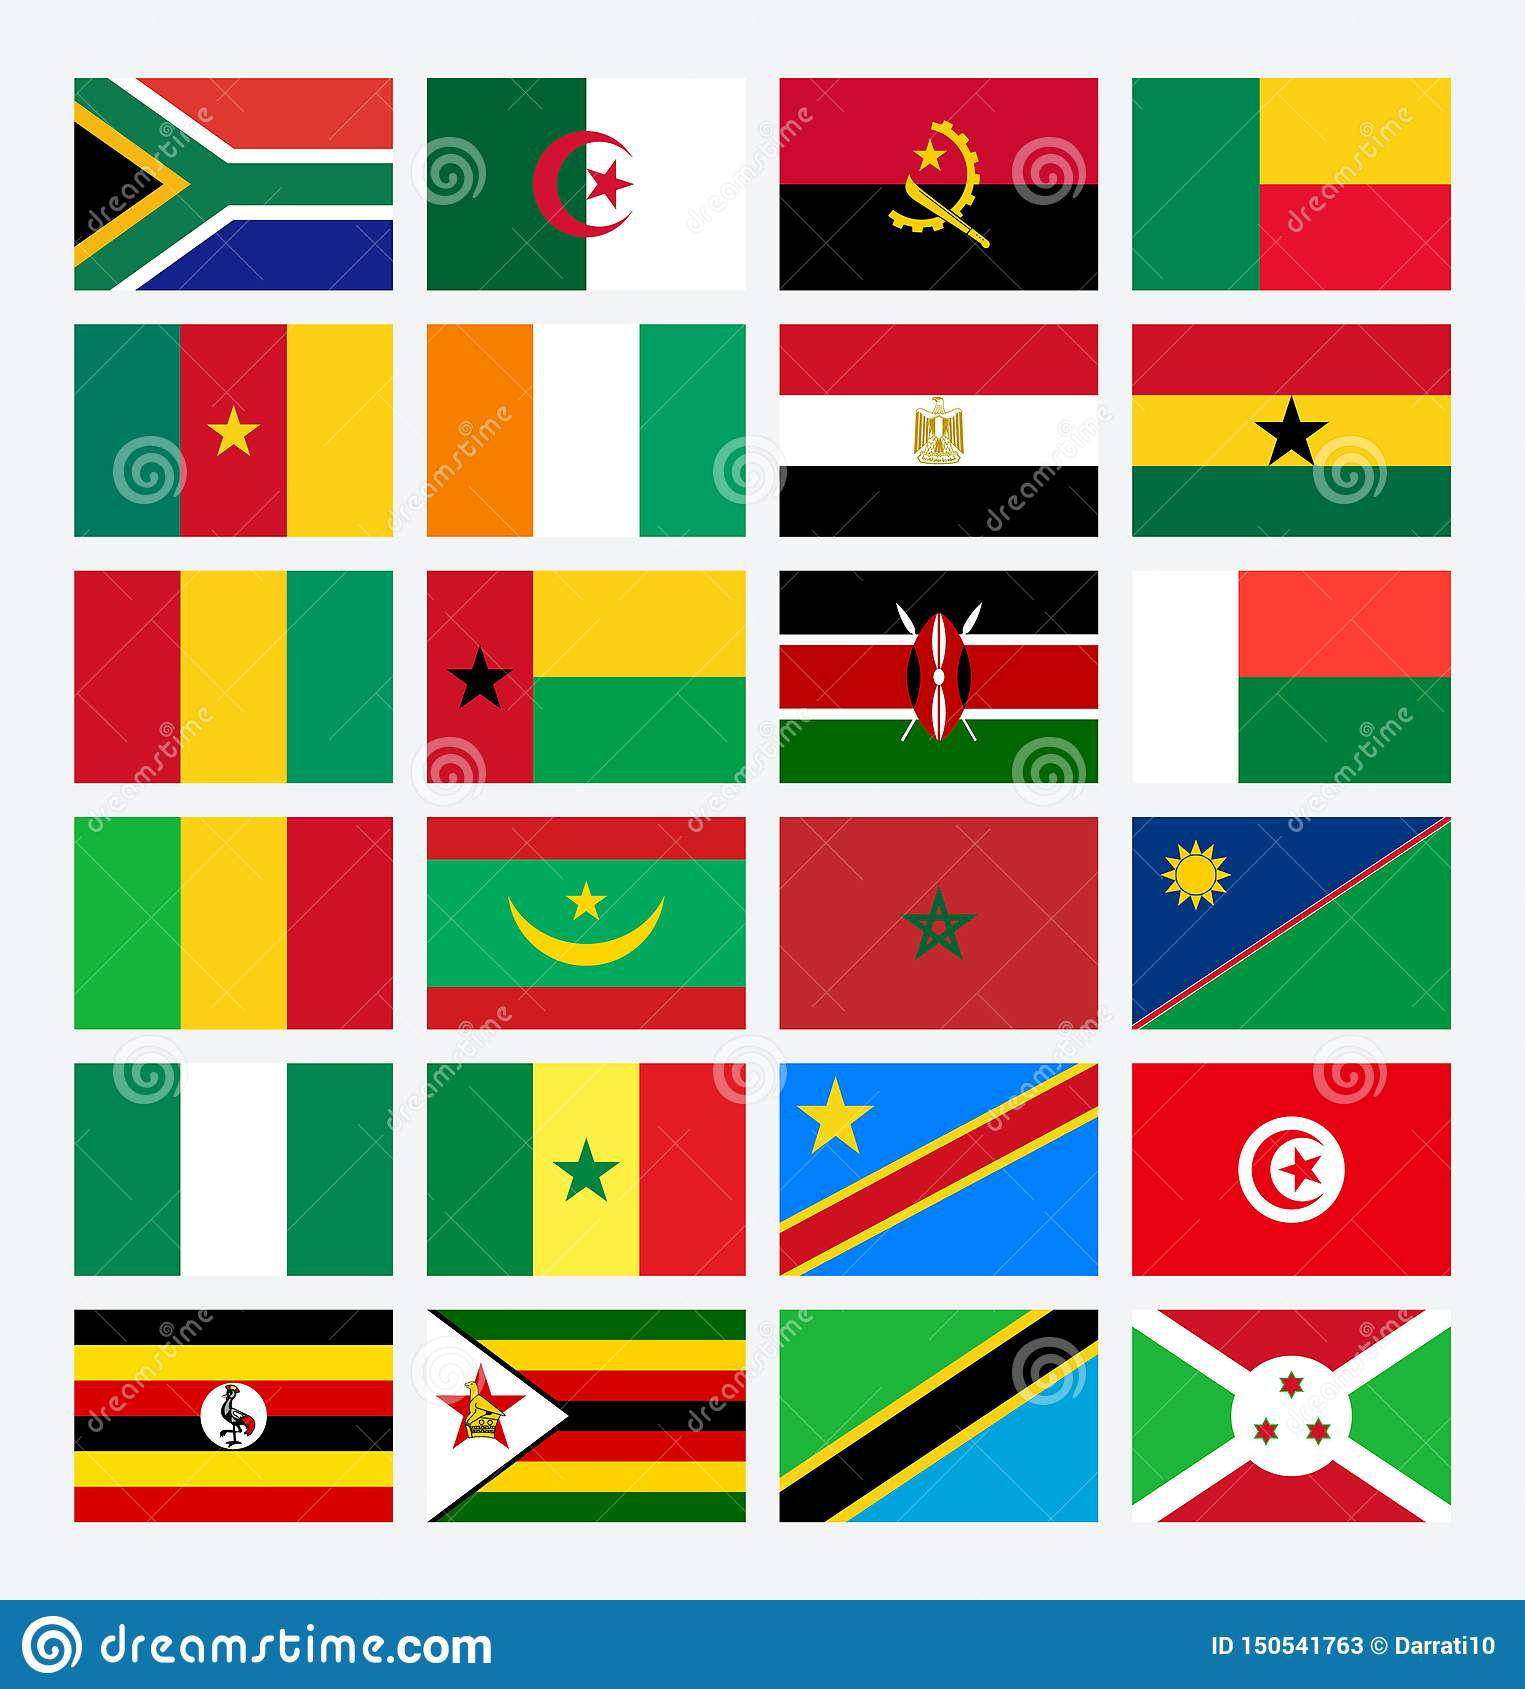 Flags Africa Countries African Cup Egypt Stock Vector Illustration Of Egypt Flags 150541763